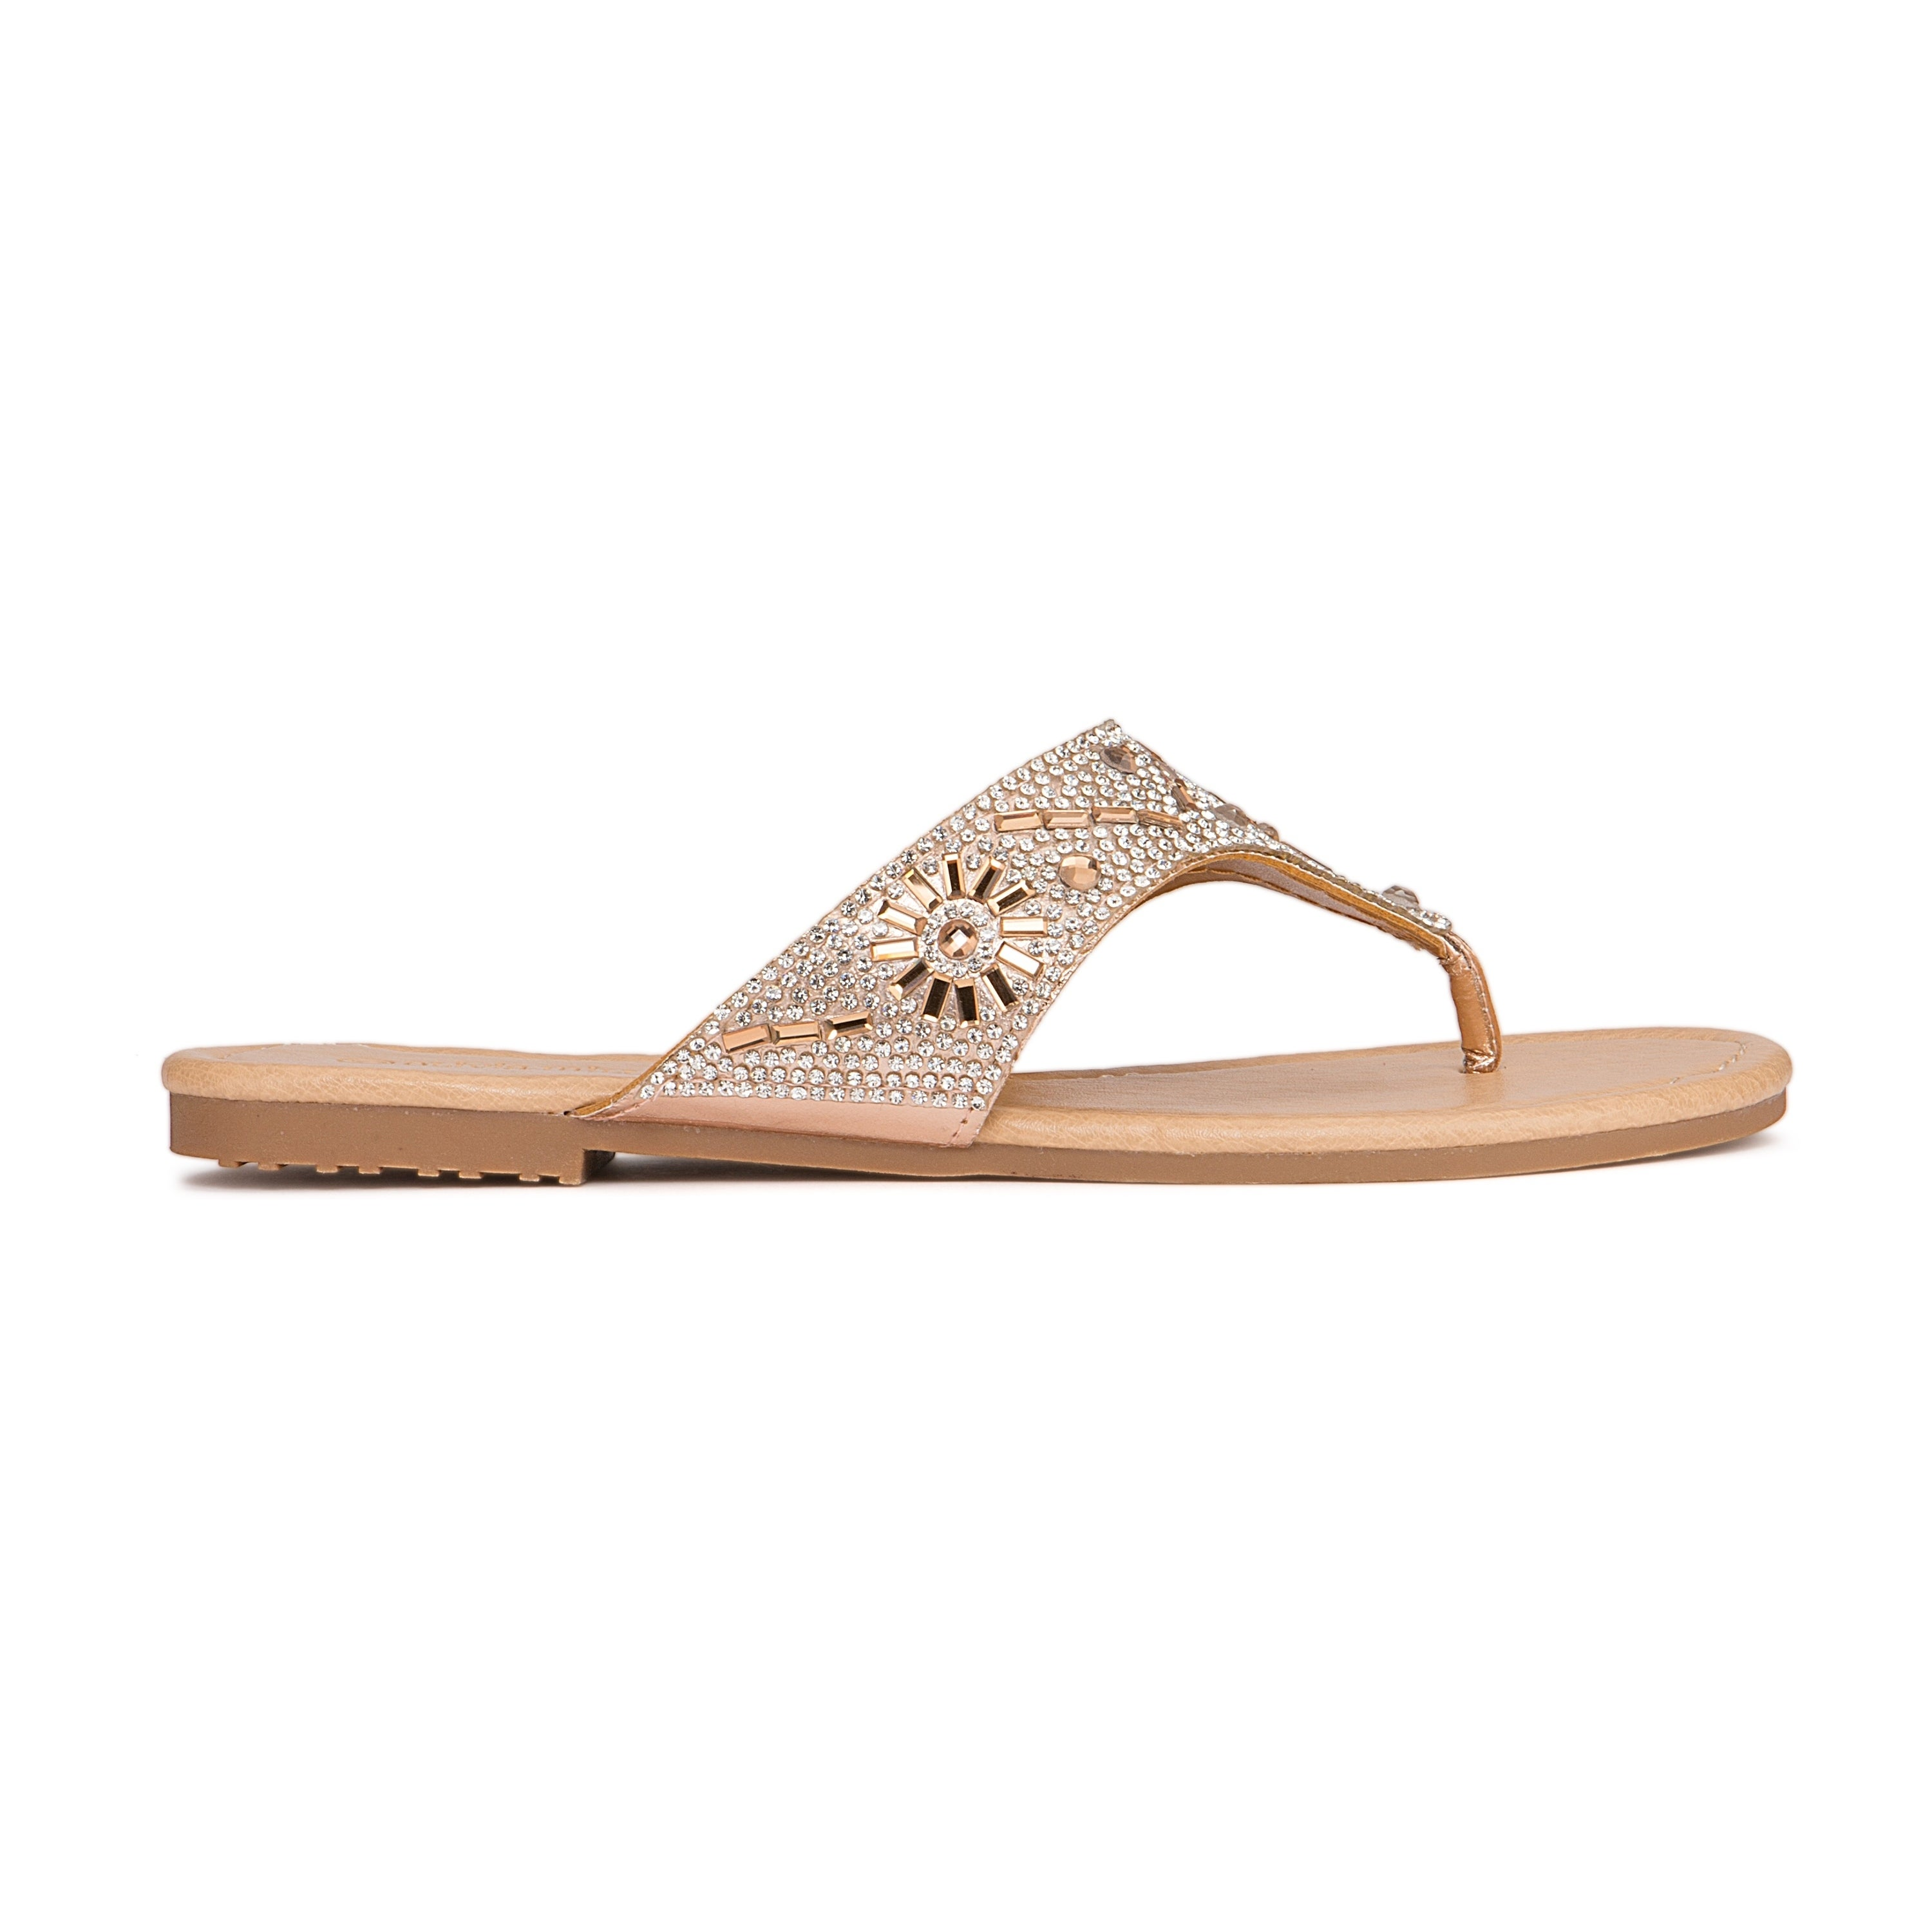 34d384cf92a1 Shop Olivia Miller  Tamarac  Multi Circle Rhinestone Sandals - On Sale -  Free Shipping On Orders Over  45 - Overstock - 20338666